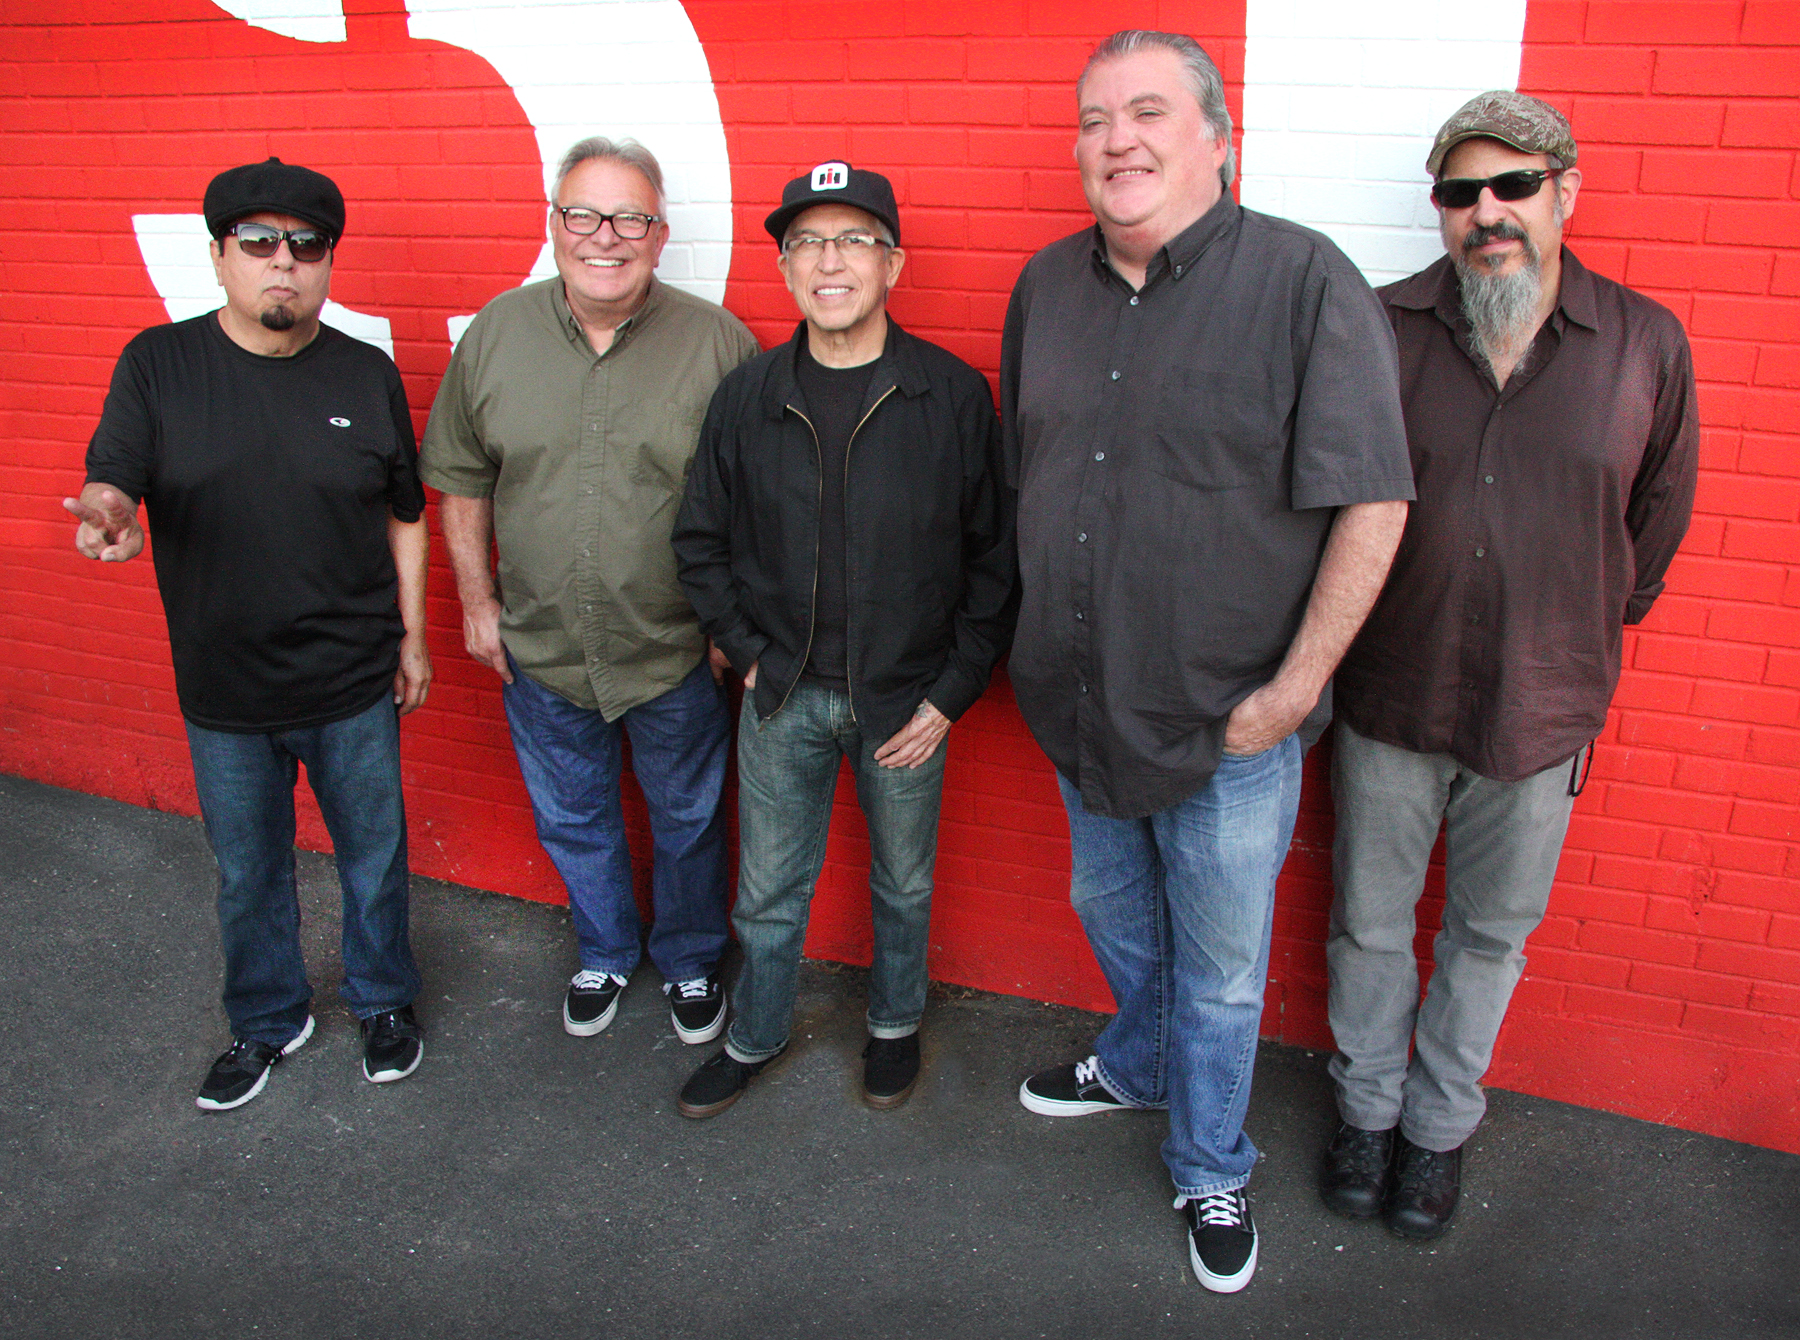 Los Lobos Plays a One-of-a-Kind Show 12/29 at The Rose in Pasadena